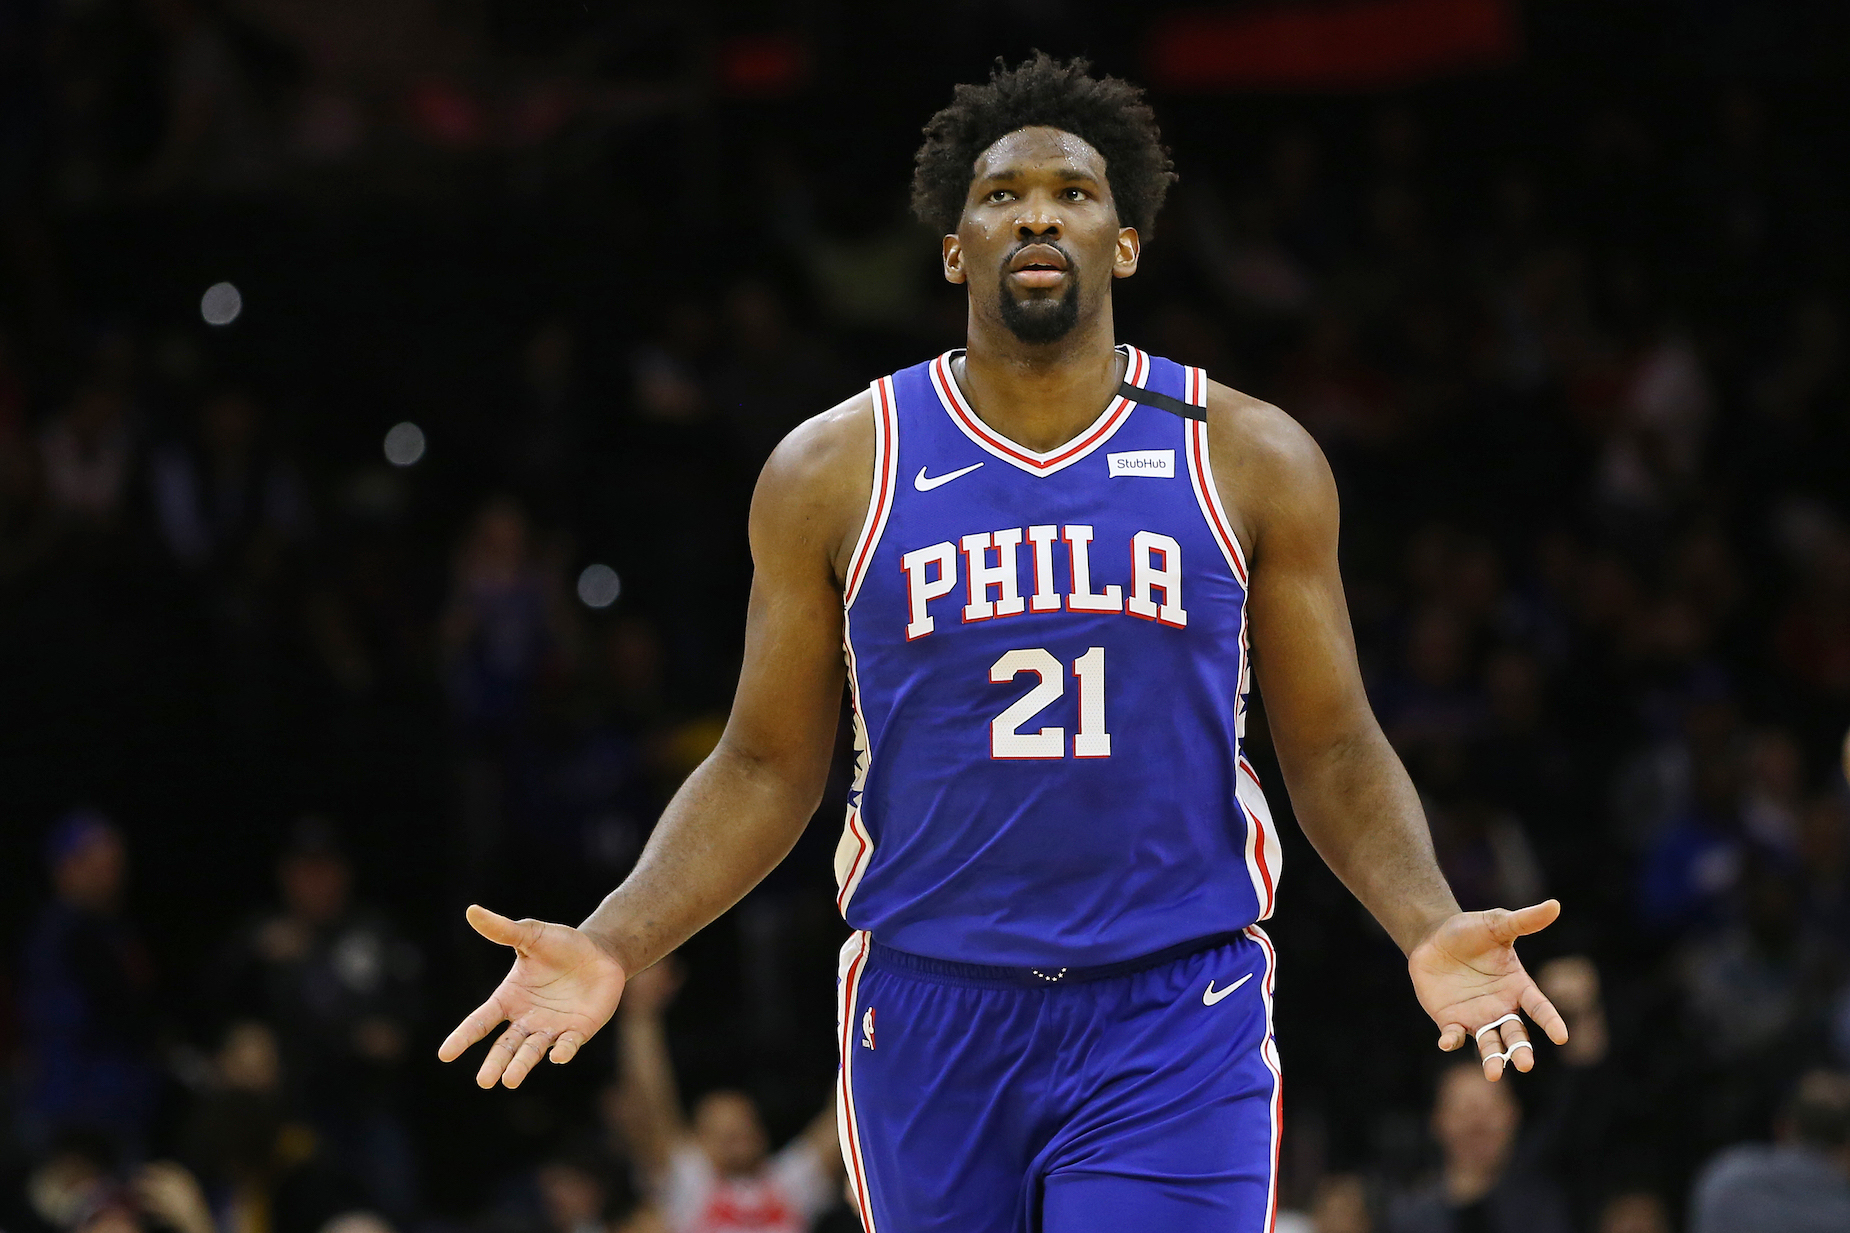 76ers star Joel Embiid used to have the worst possible diet.